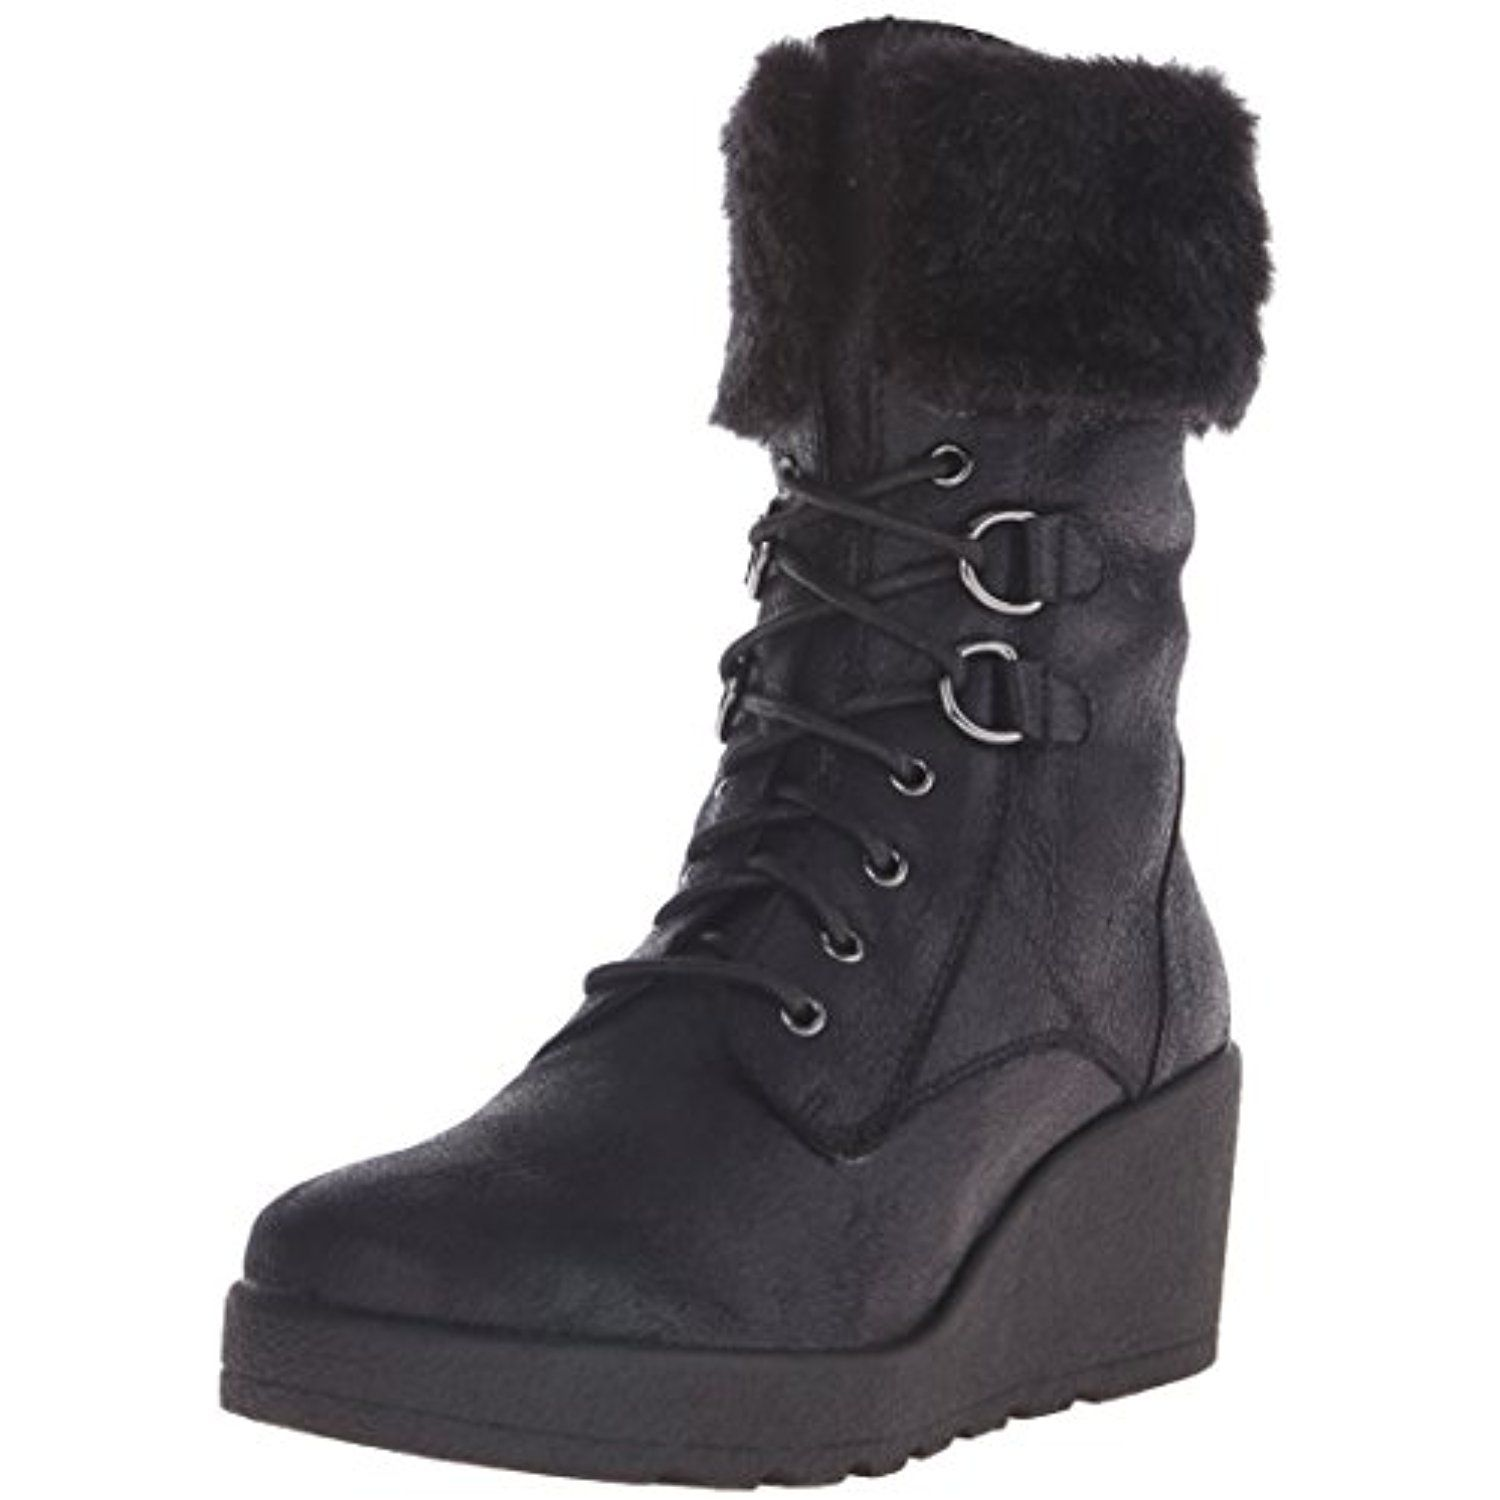 A2 by Aerosoles Women's Color Range Winter Boot >>> You can get more details